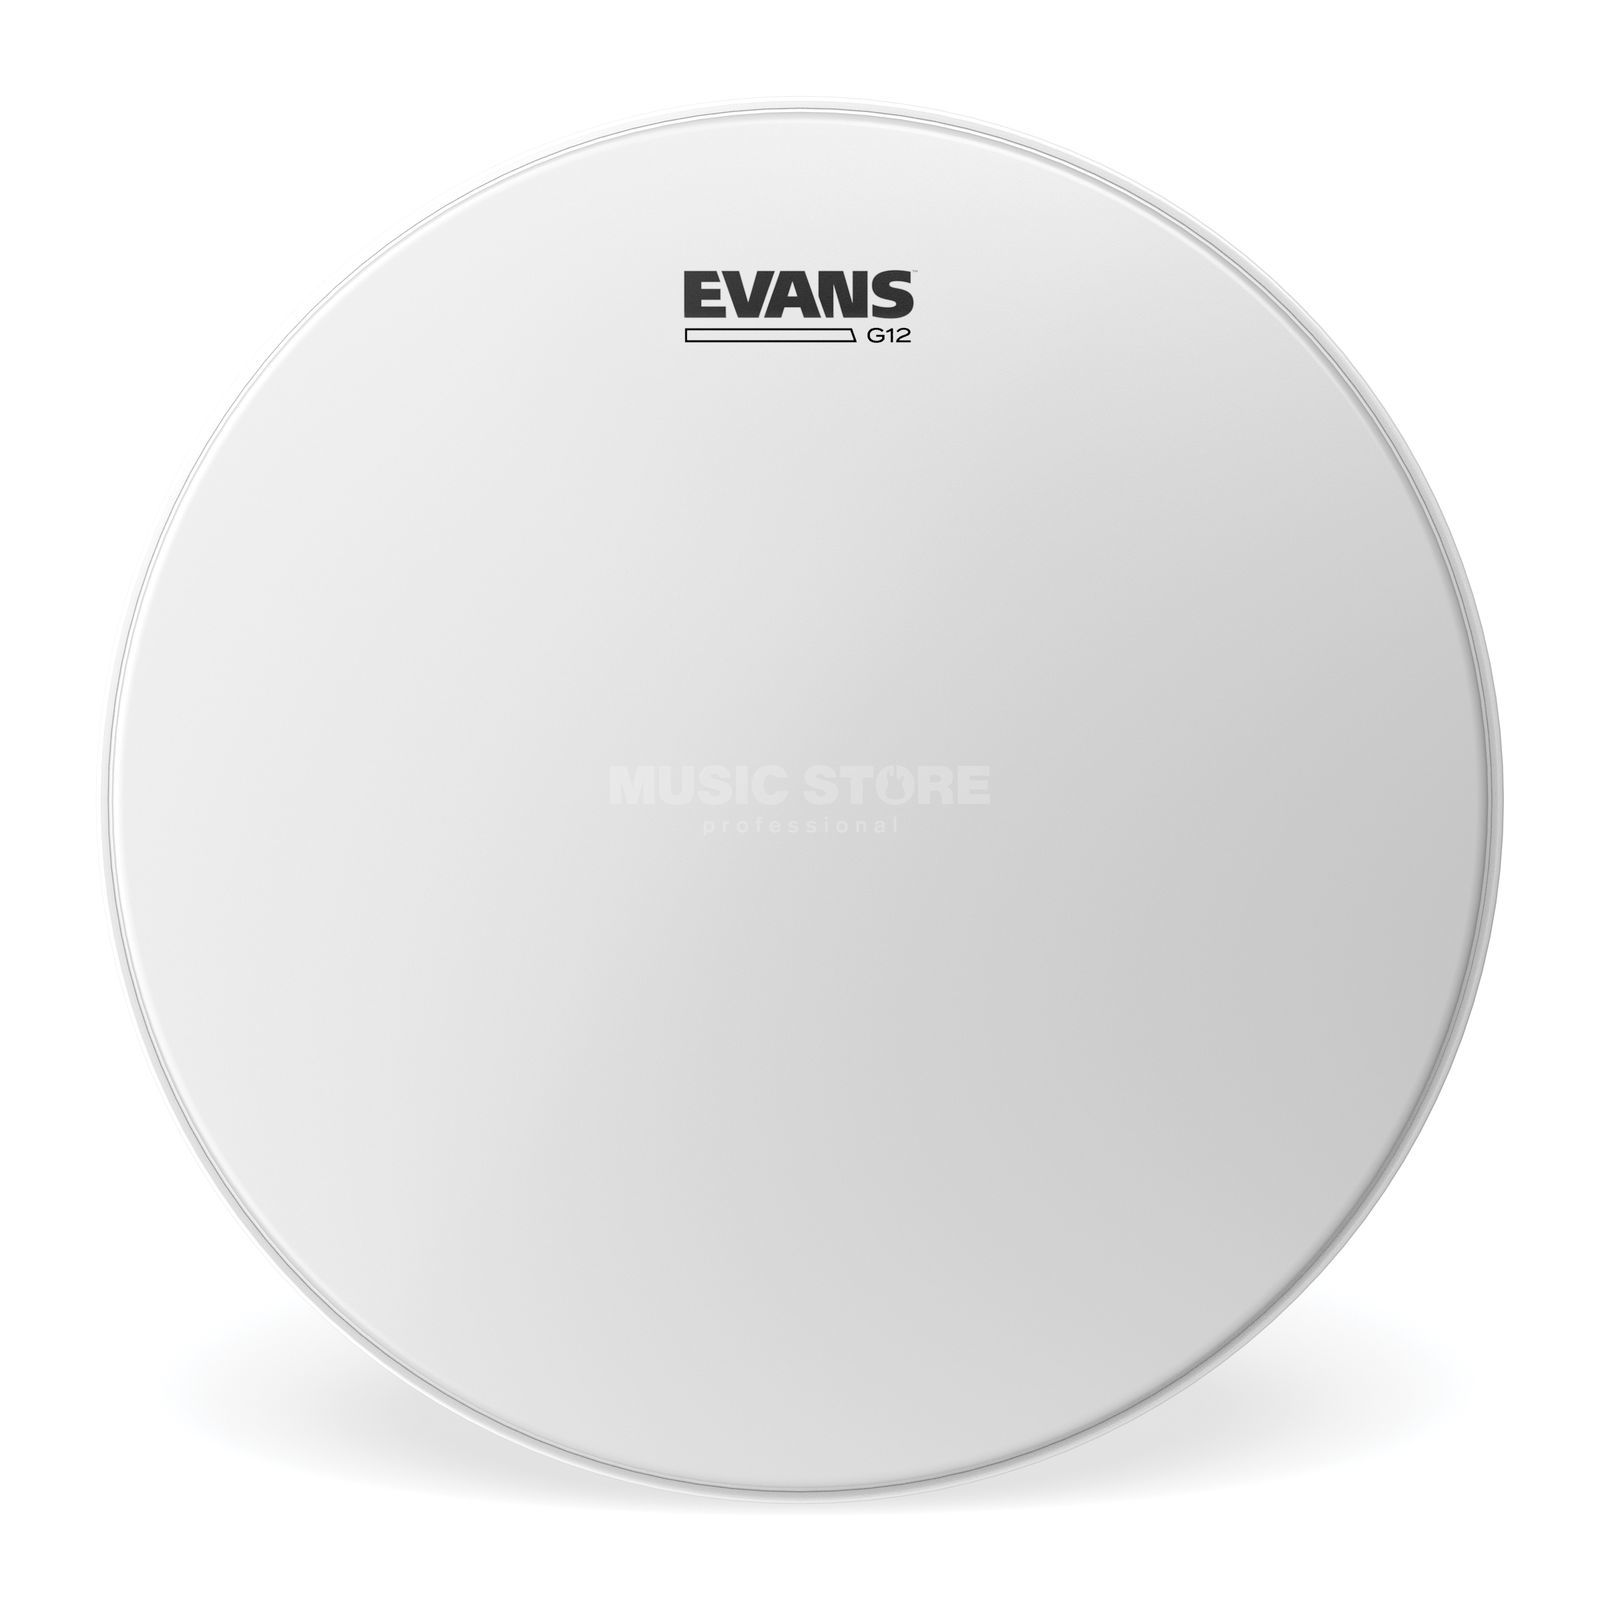 "Evans G12 12"" coated, B12G12, Tom Batter Produktbild"